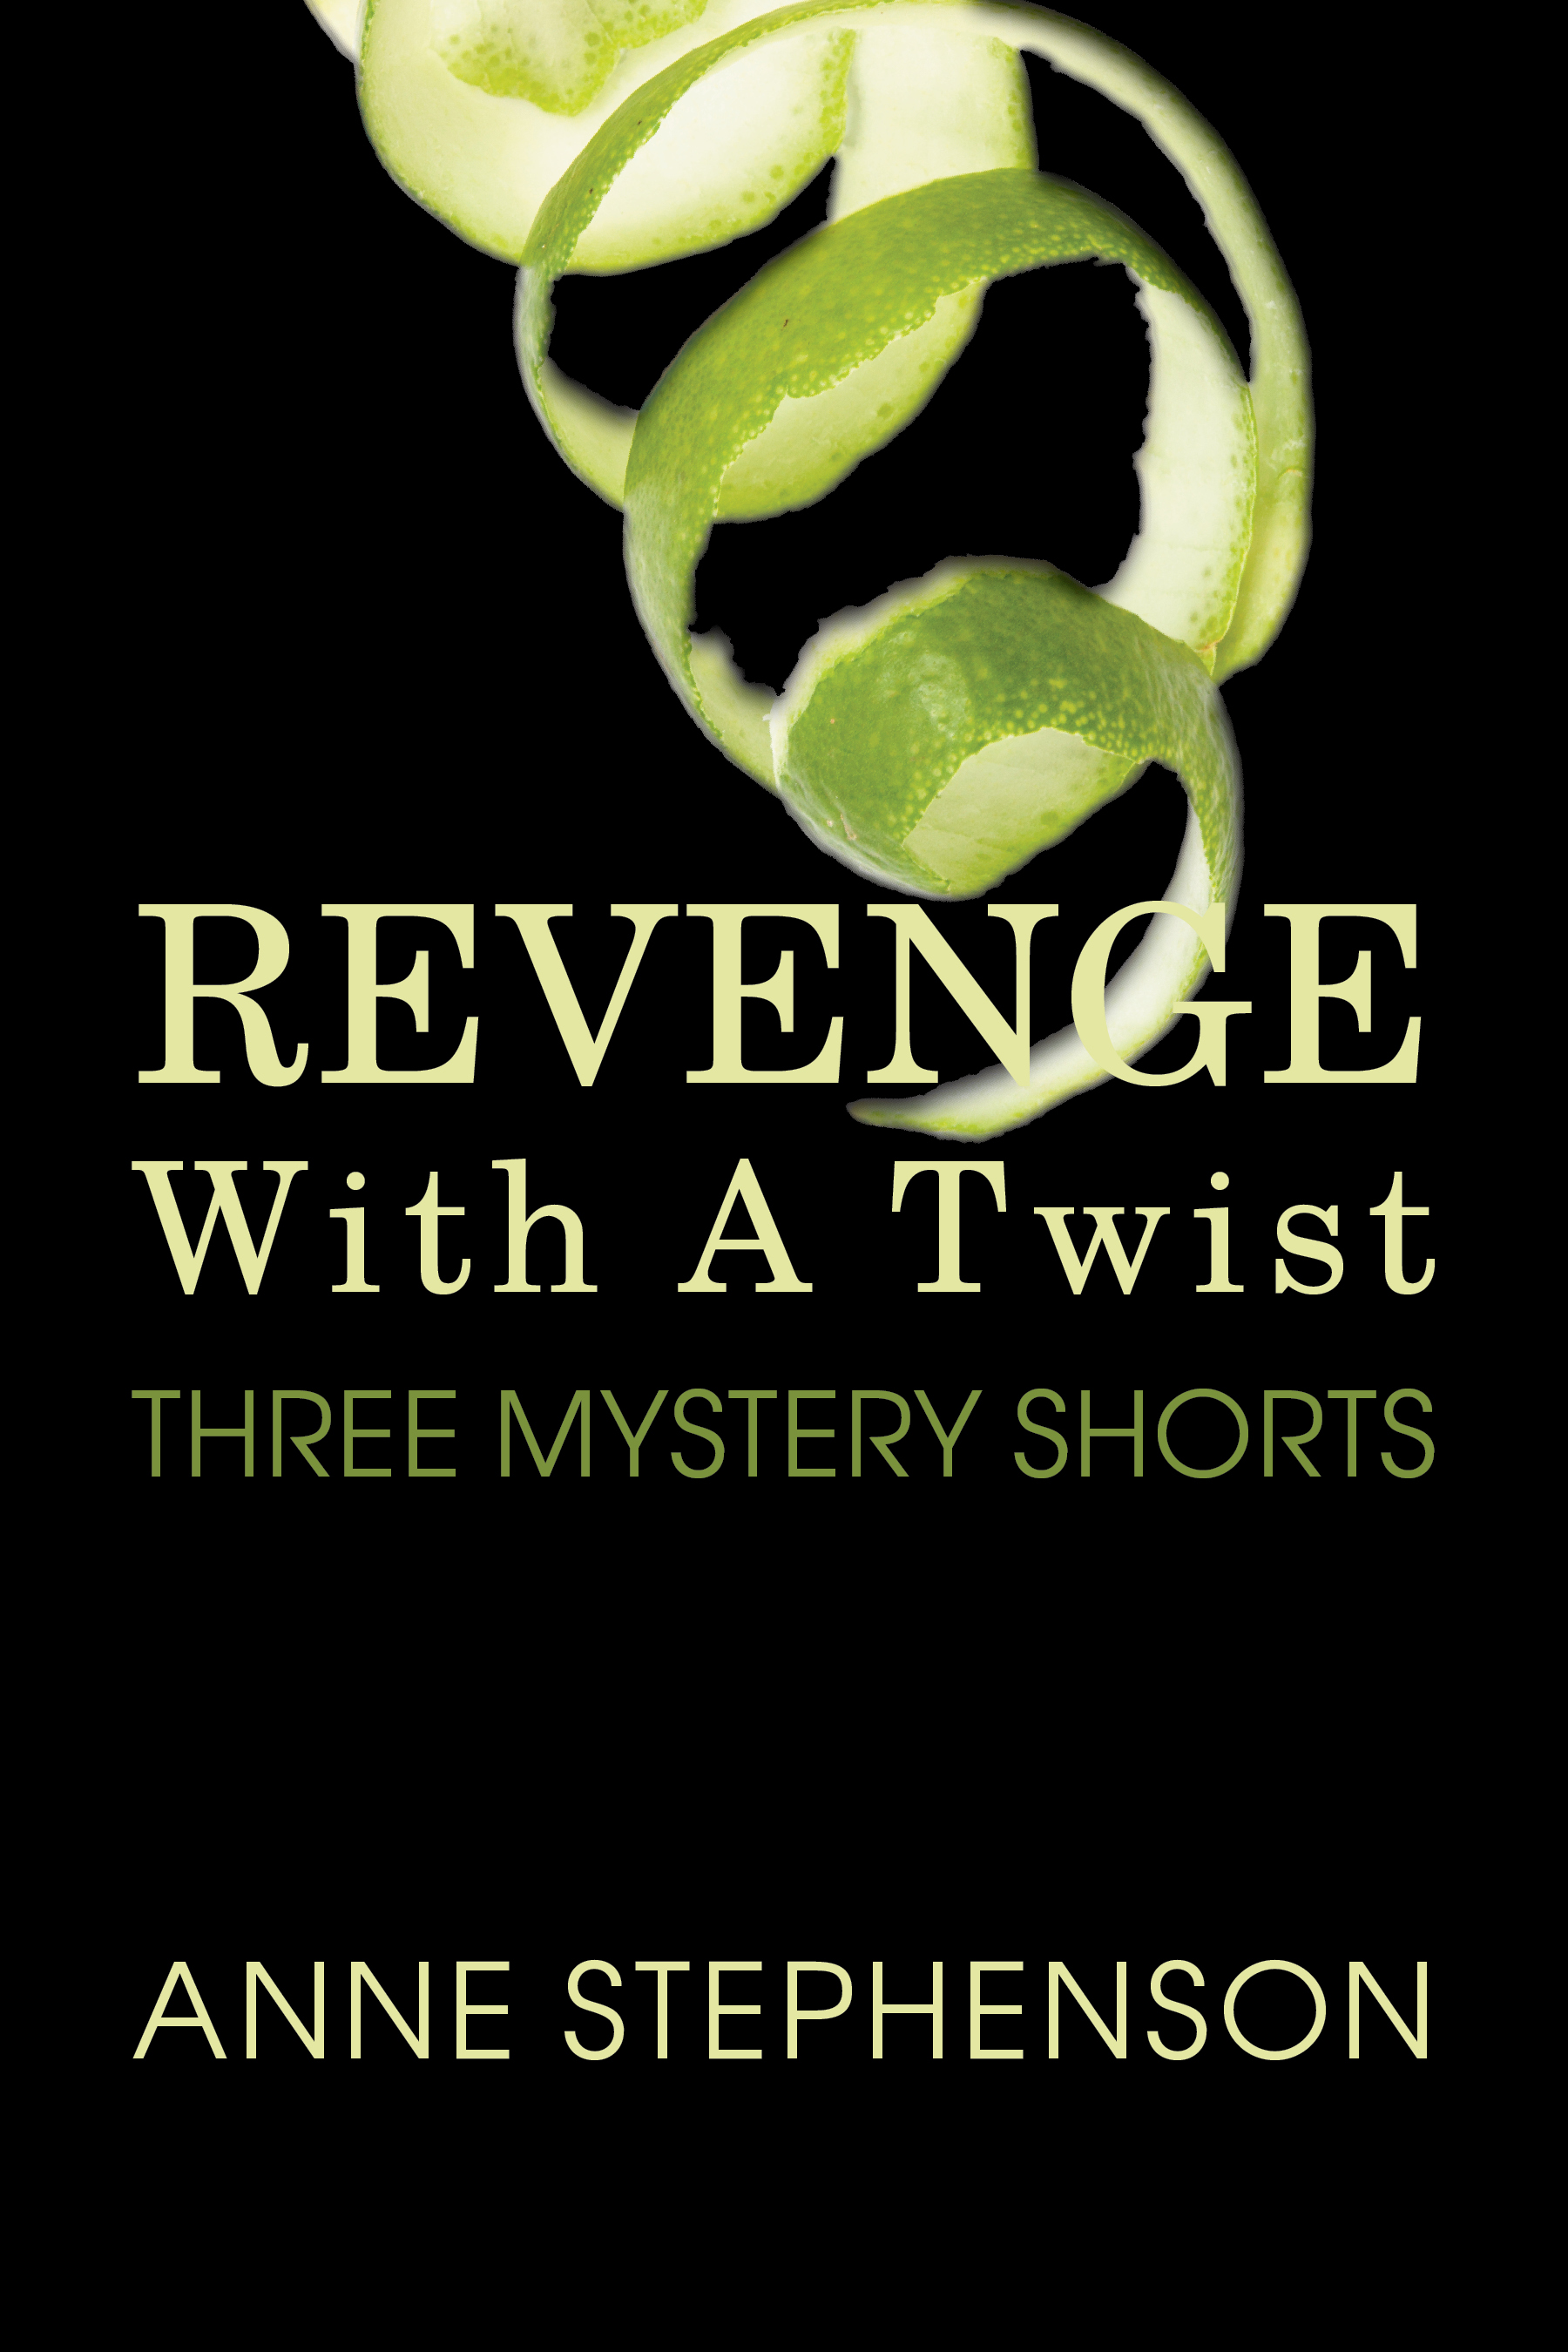 Revenge with a Twist by Anne Stephenson